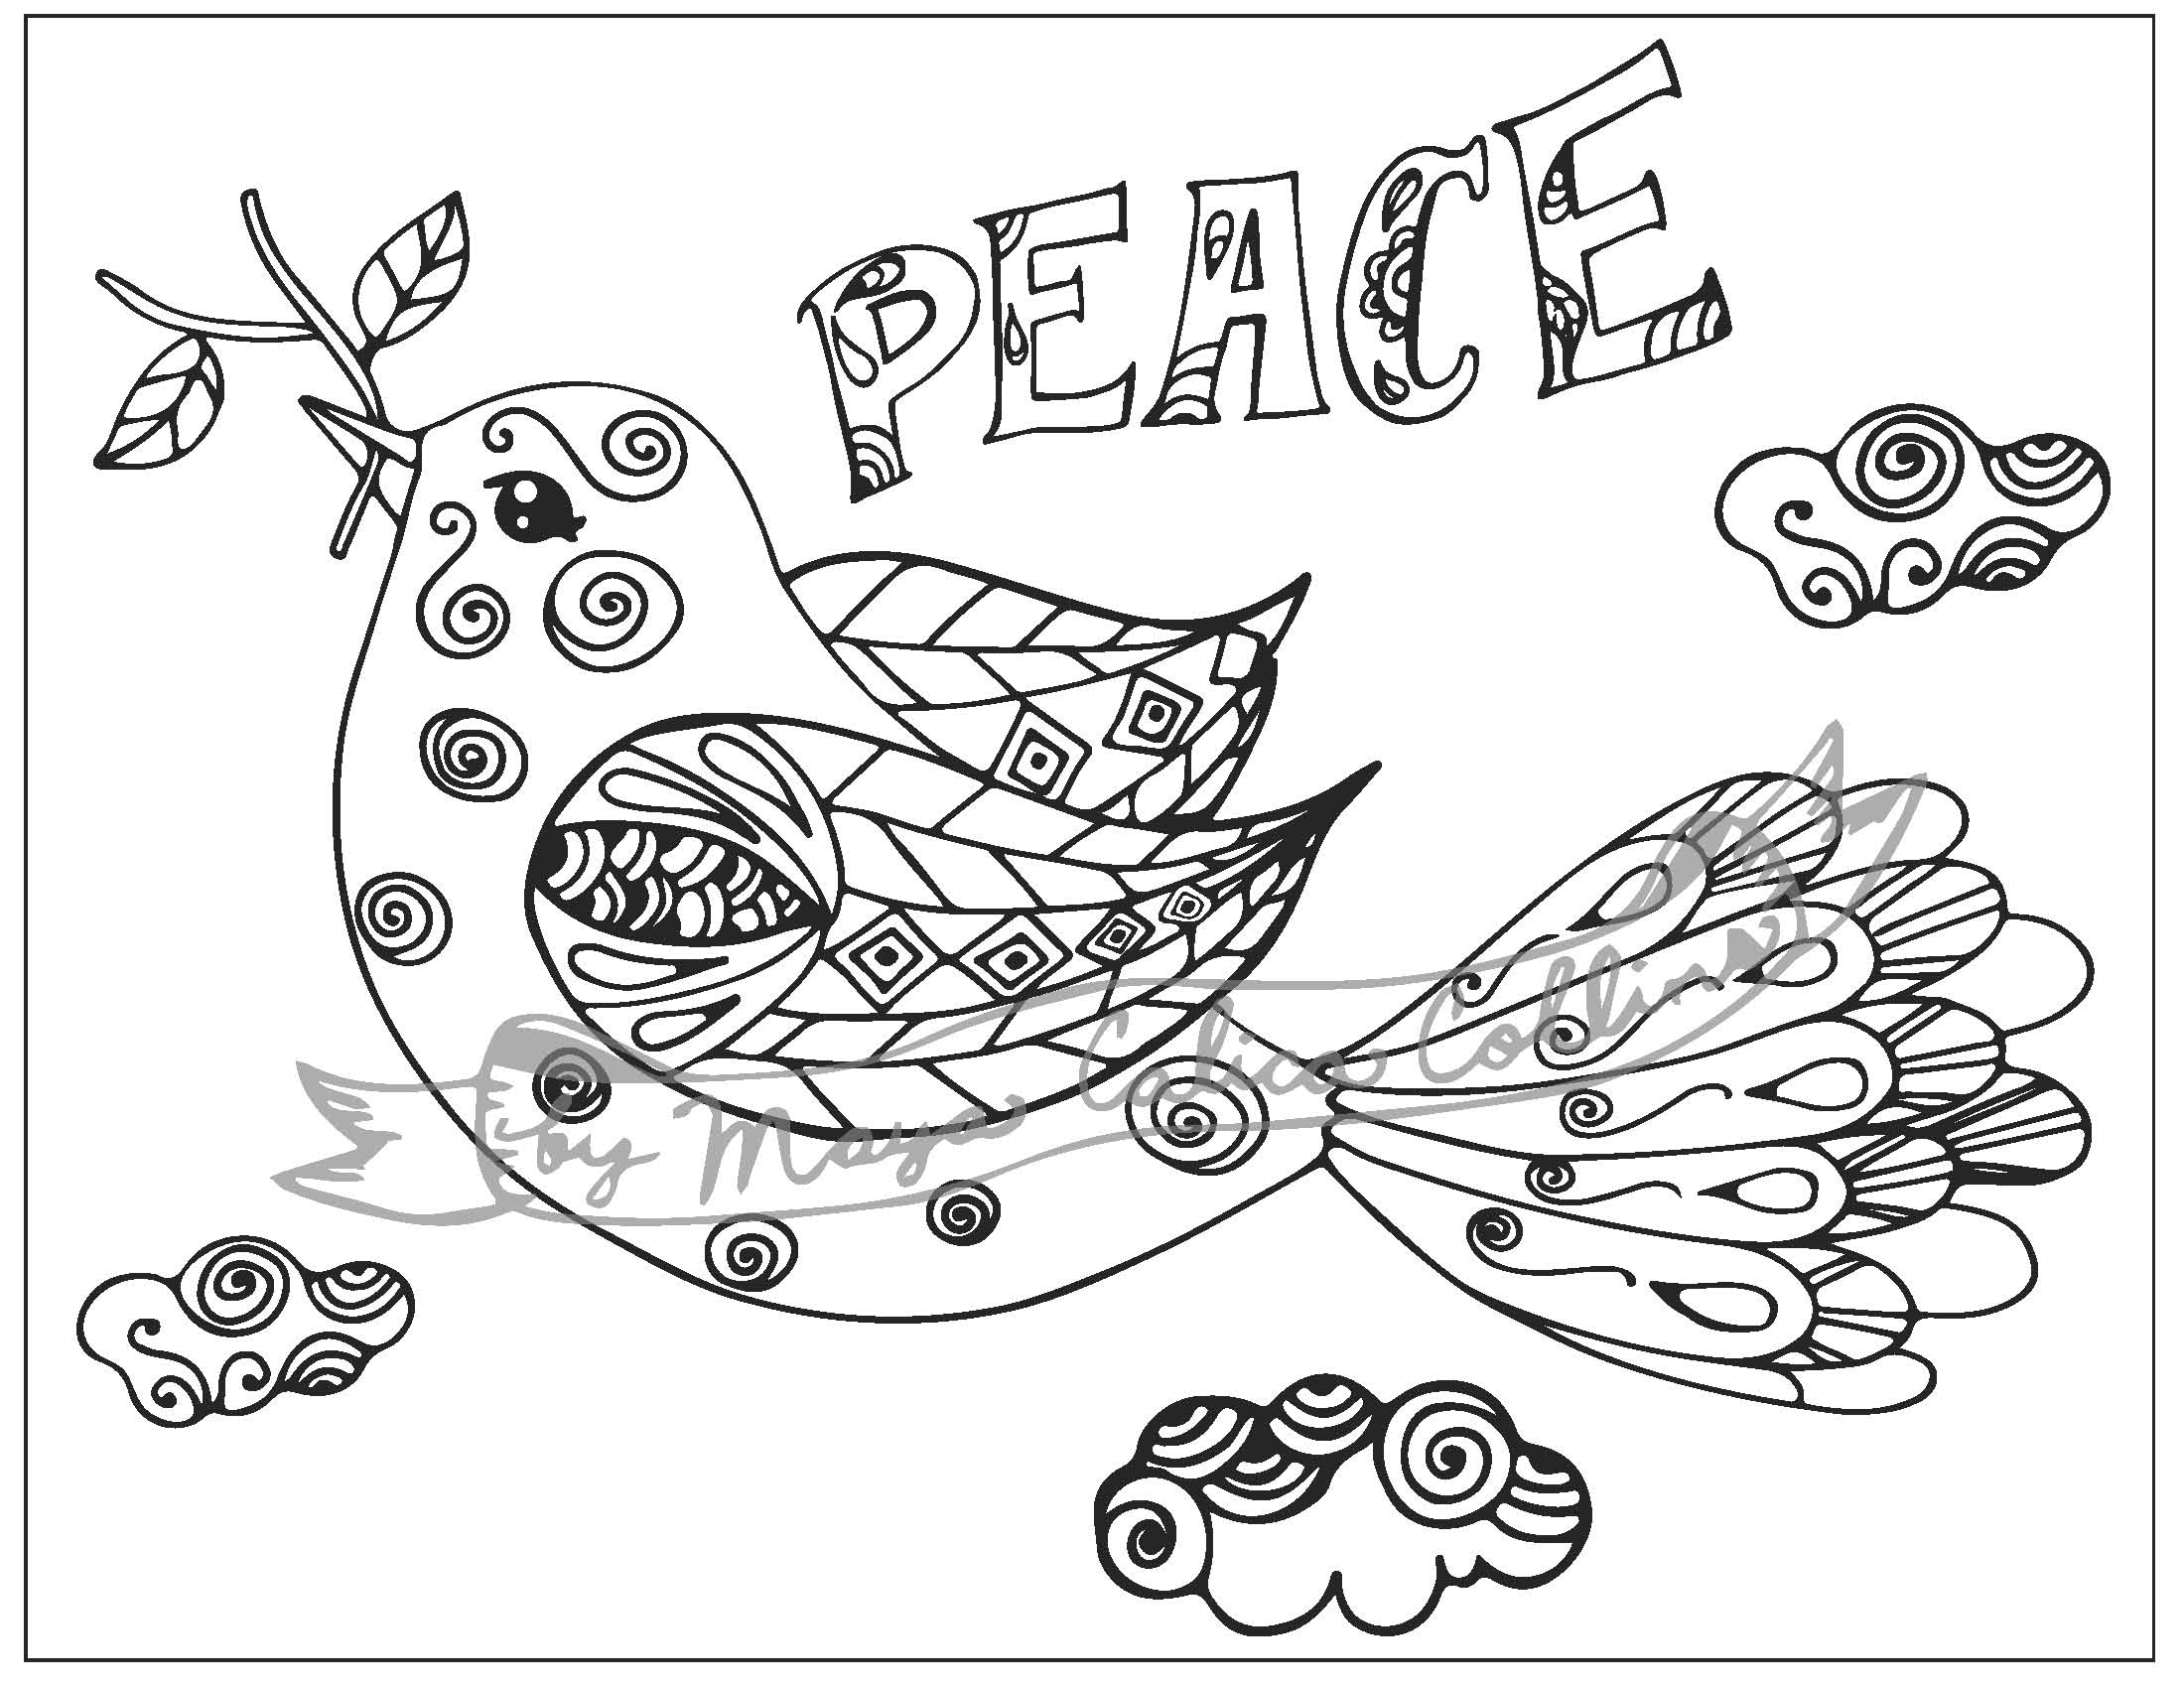 peace dove coloring page zentangle dove of peace coloring page free printable dove peace coloring page